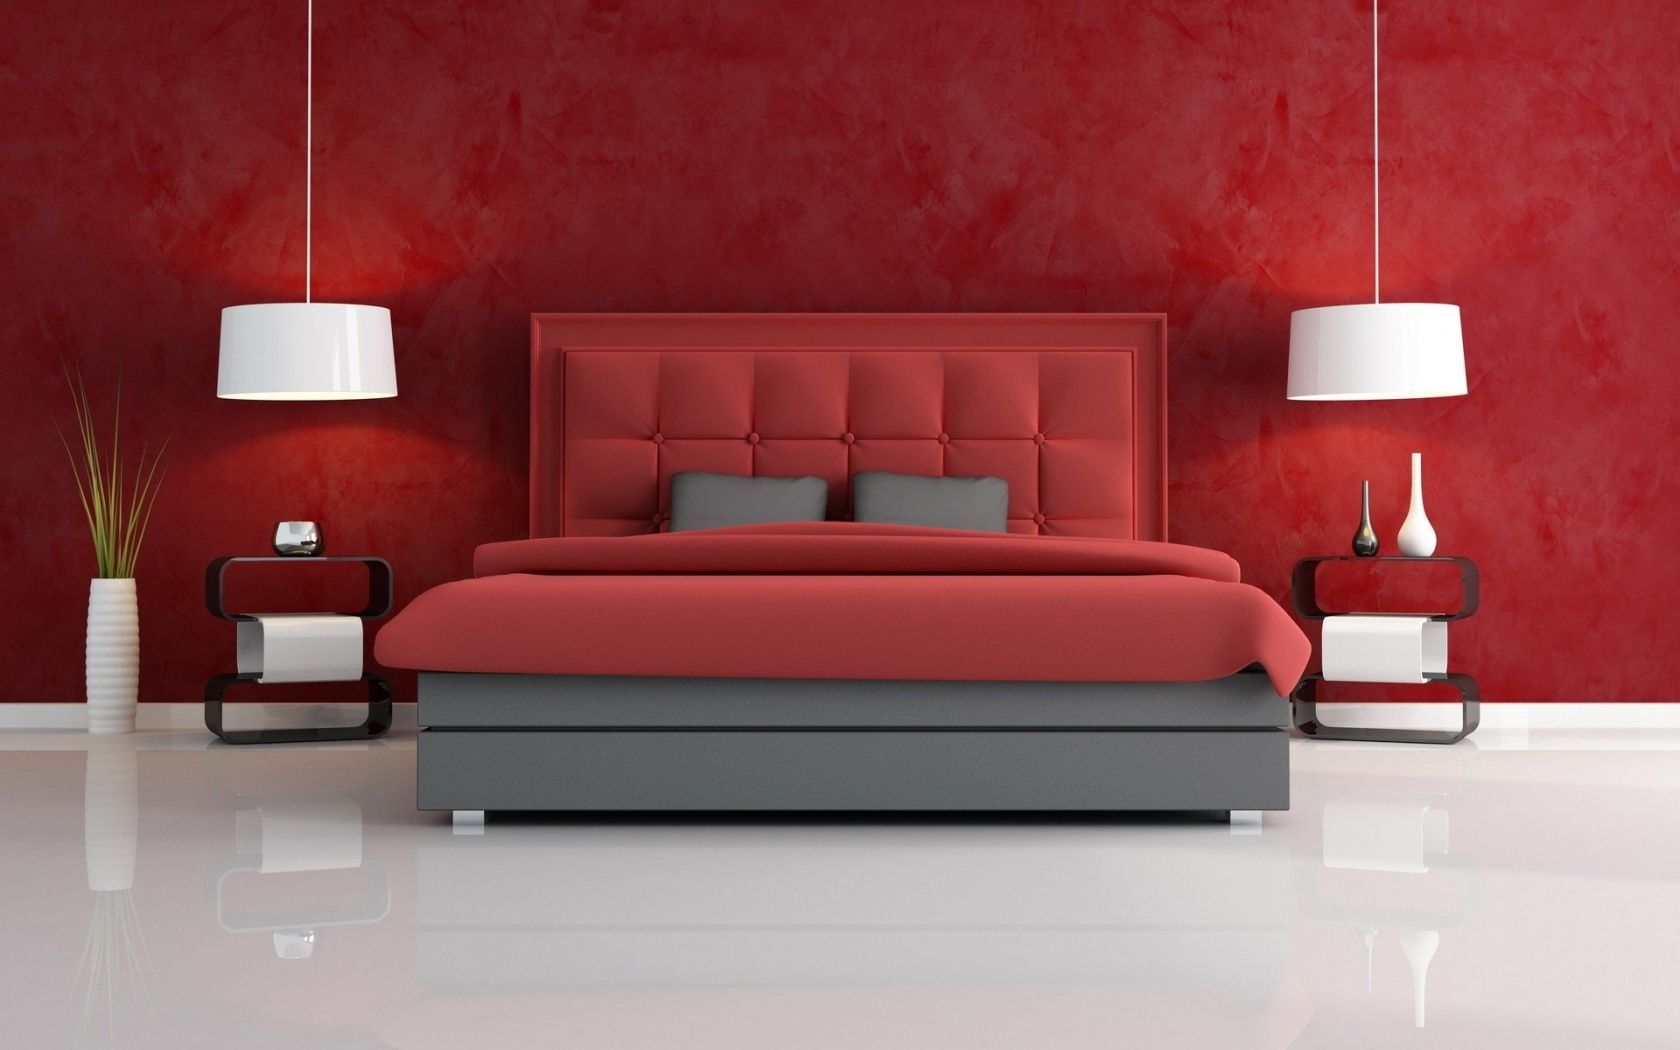 Bedroom color ideas grey and red - Charming Red Bedroom Design Idea With Red Wall Paint Color And Cool White Pendant Lamos And